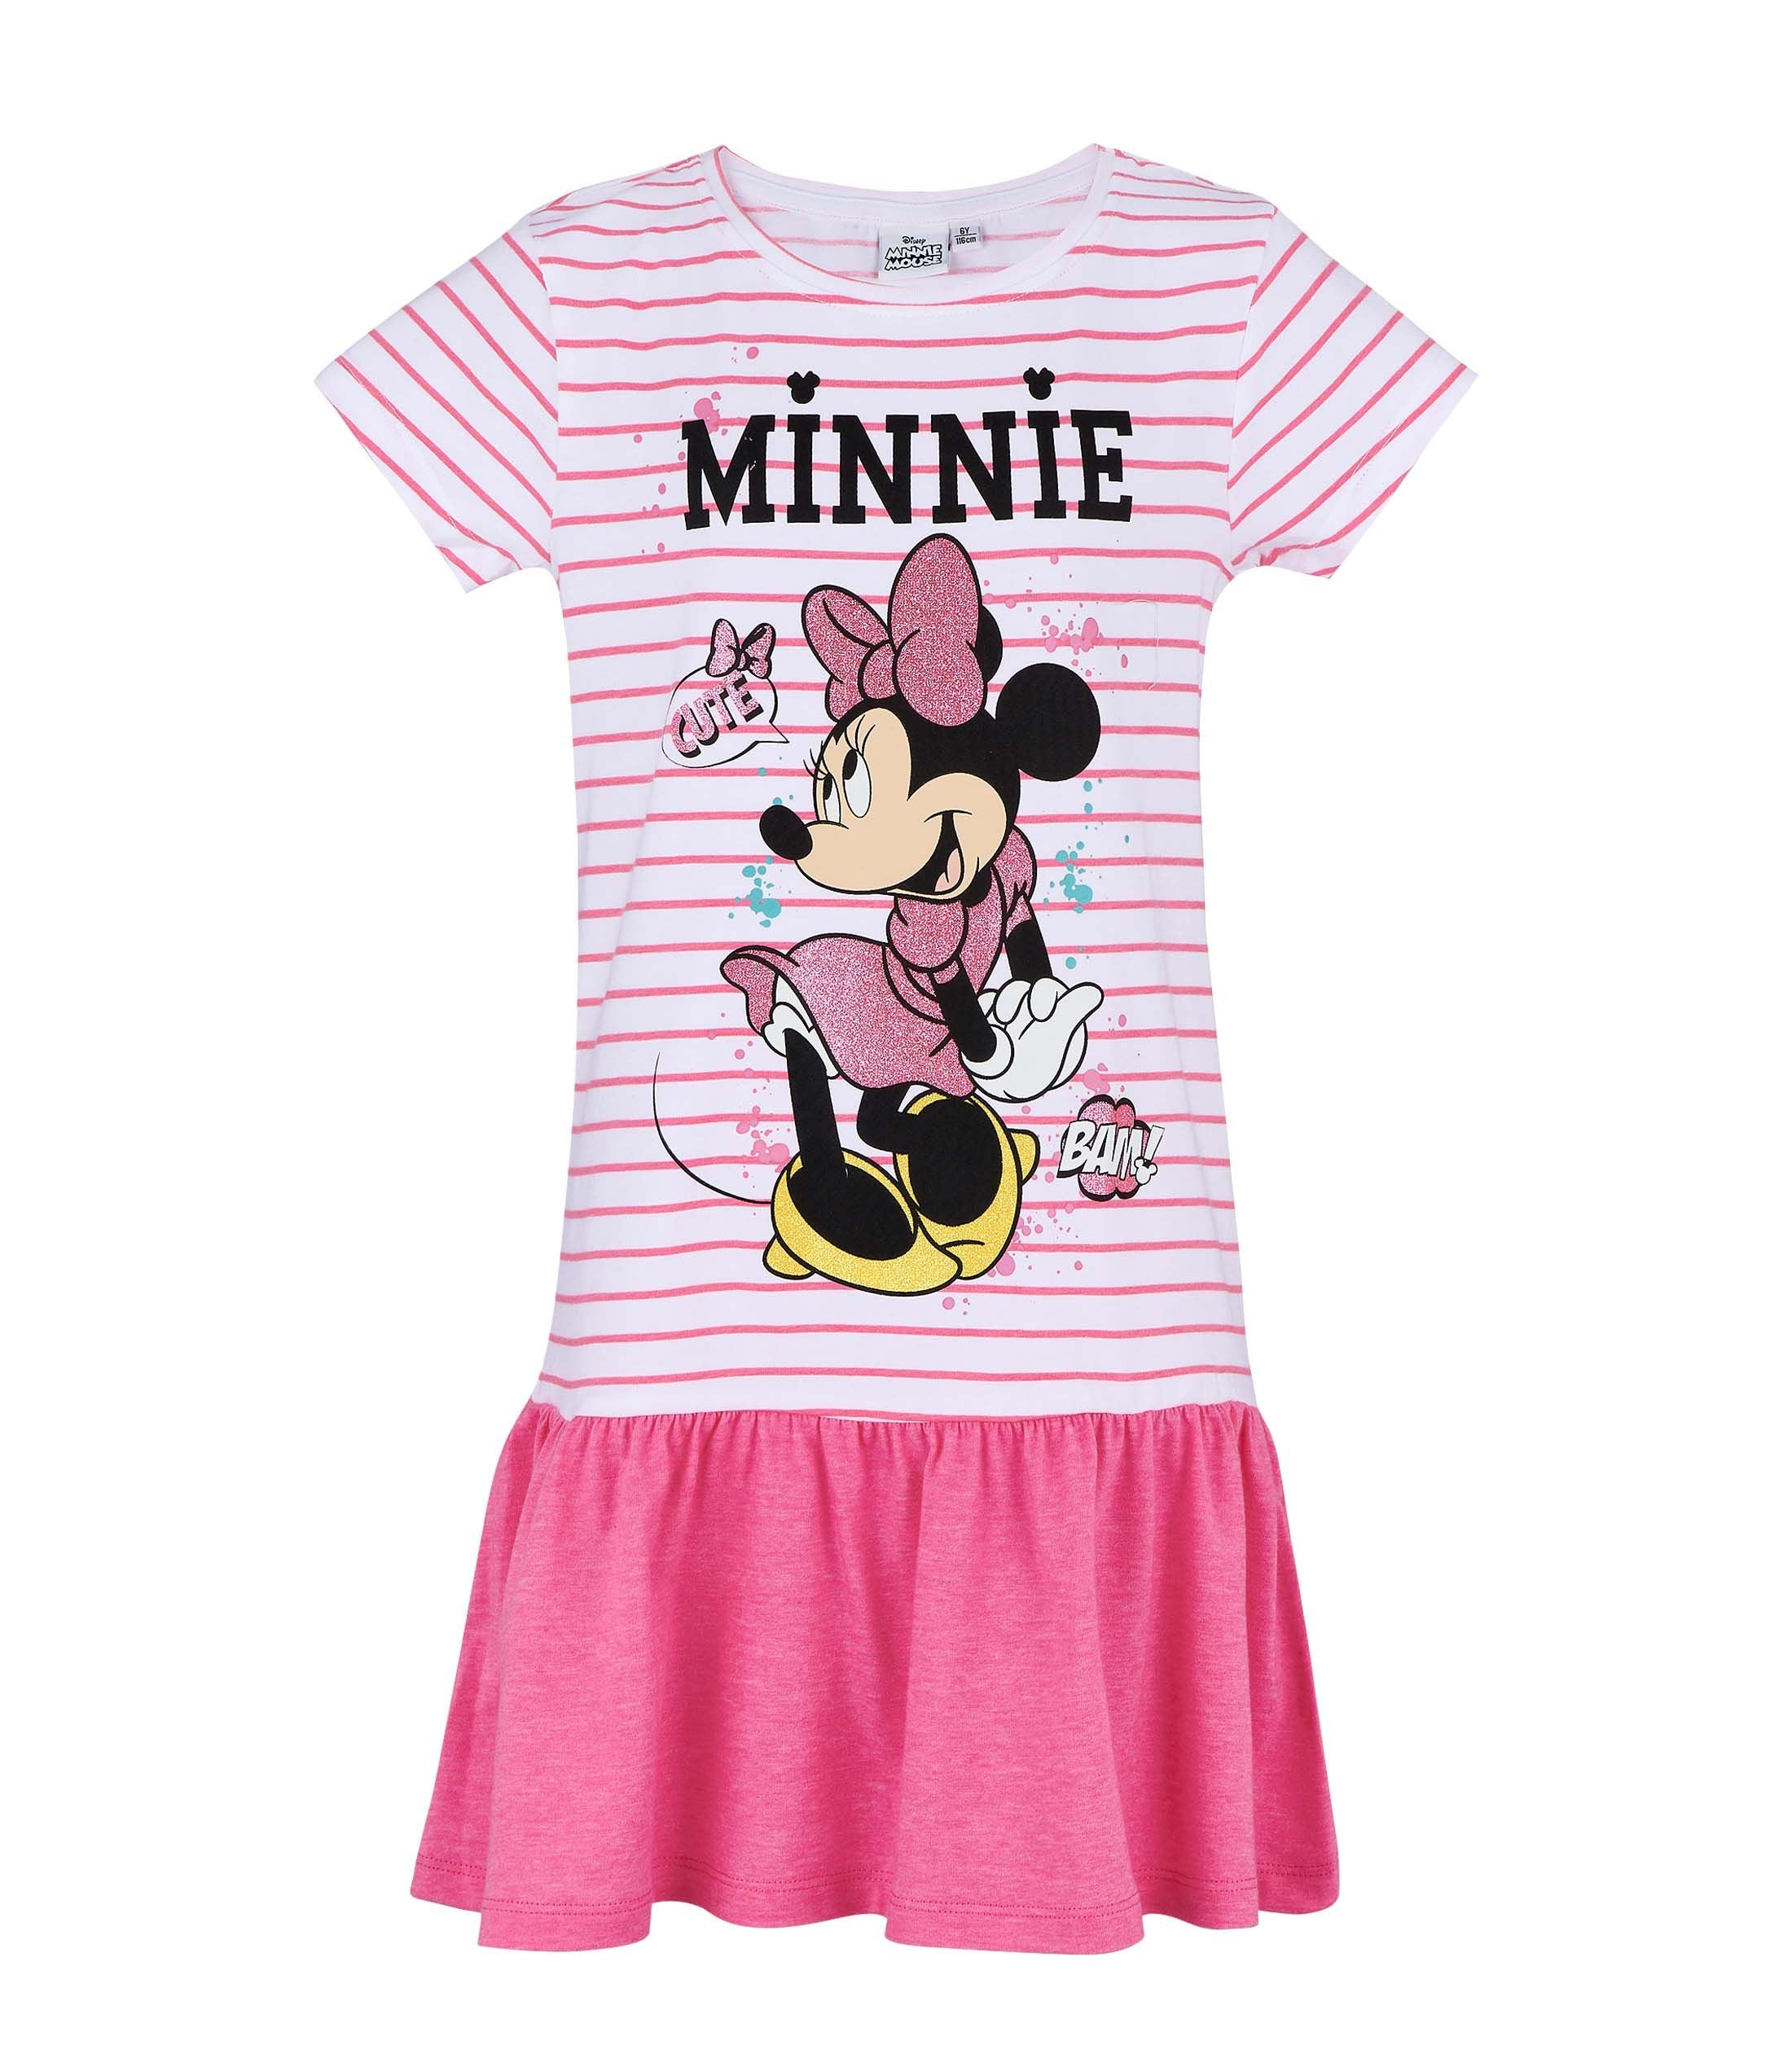 a543caa20ab7 Girls Dress Disney's Minnie Mouse - Pink – LUC BAUER